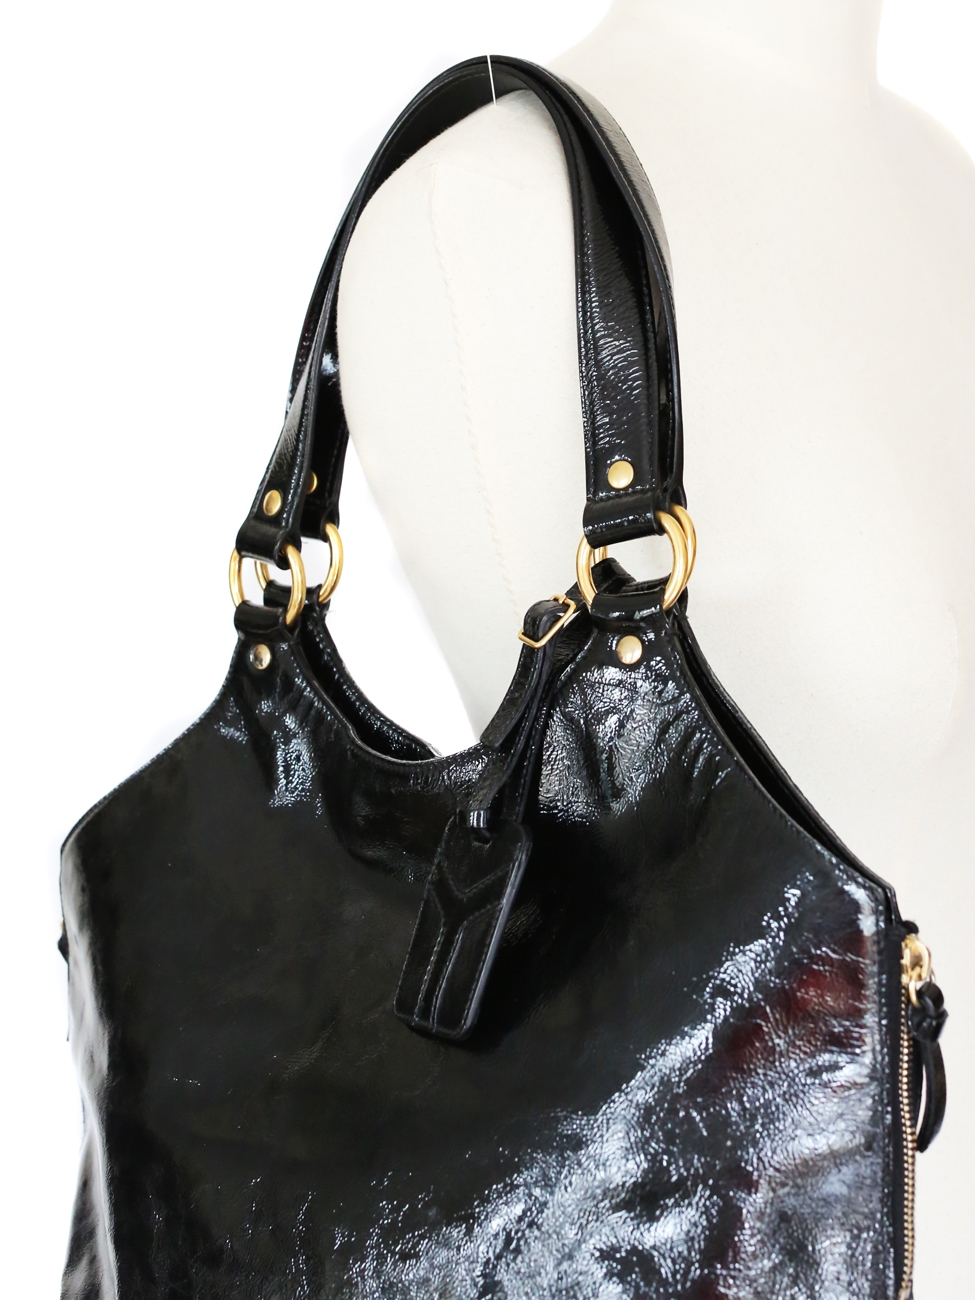 80476364d038 Louise Paris - YVES SAINT LAURENT PARIS TRIBUTE black patent large leather  bag Retail price  900